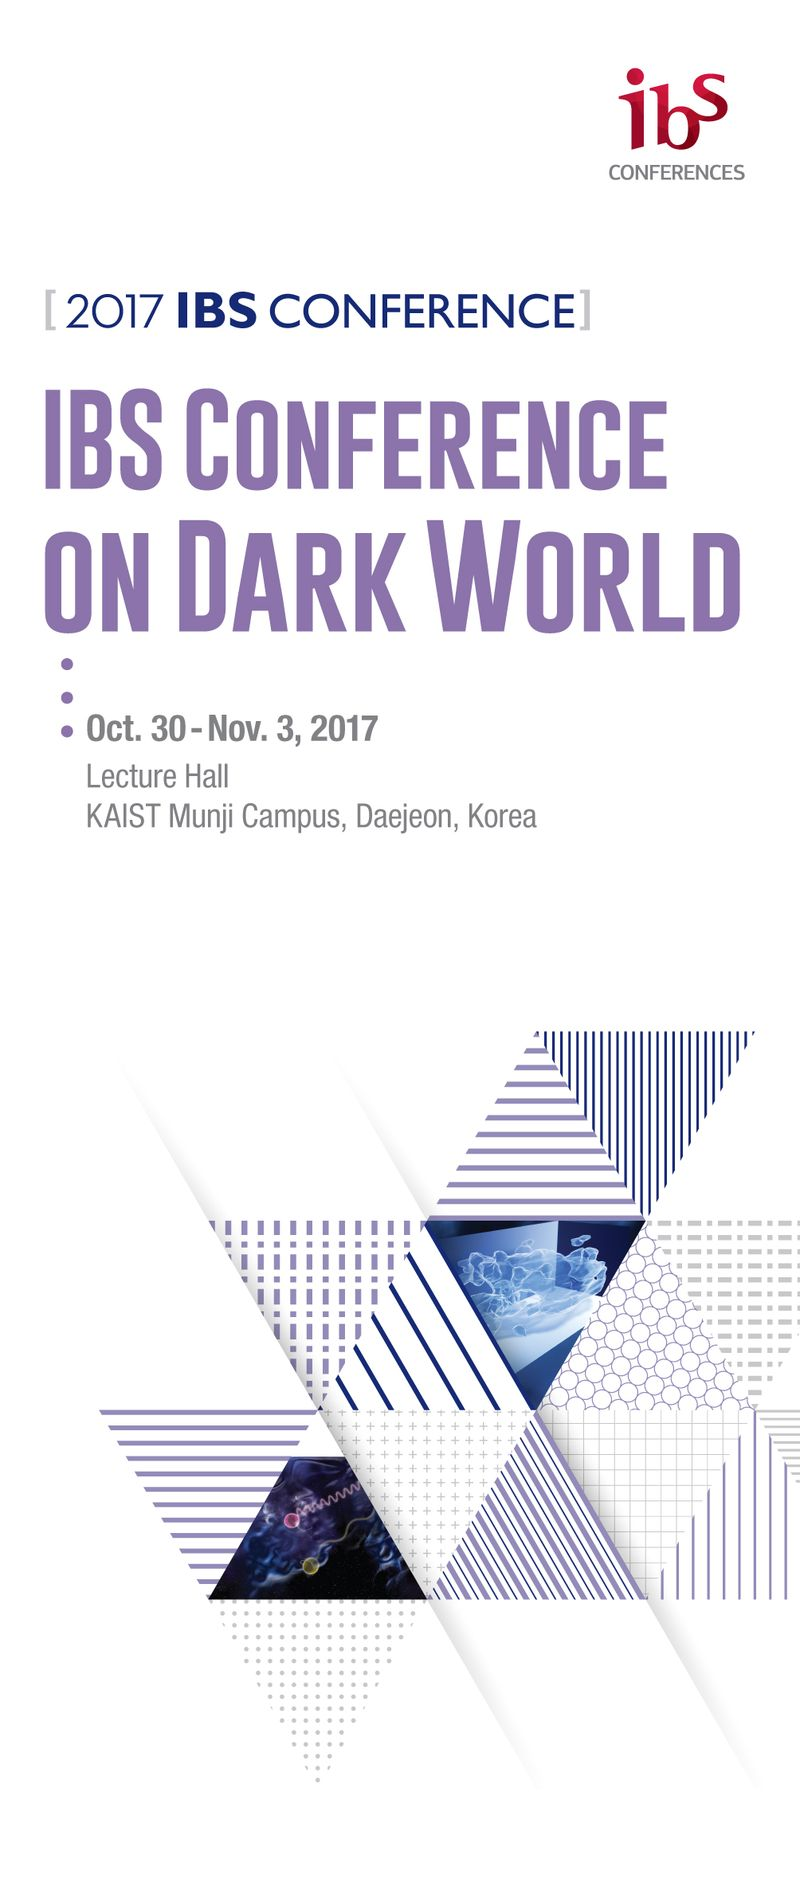 IBS Conference on Dark World